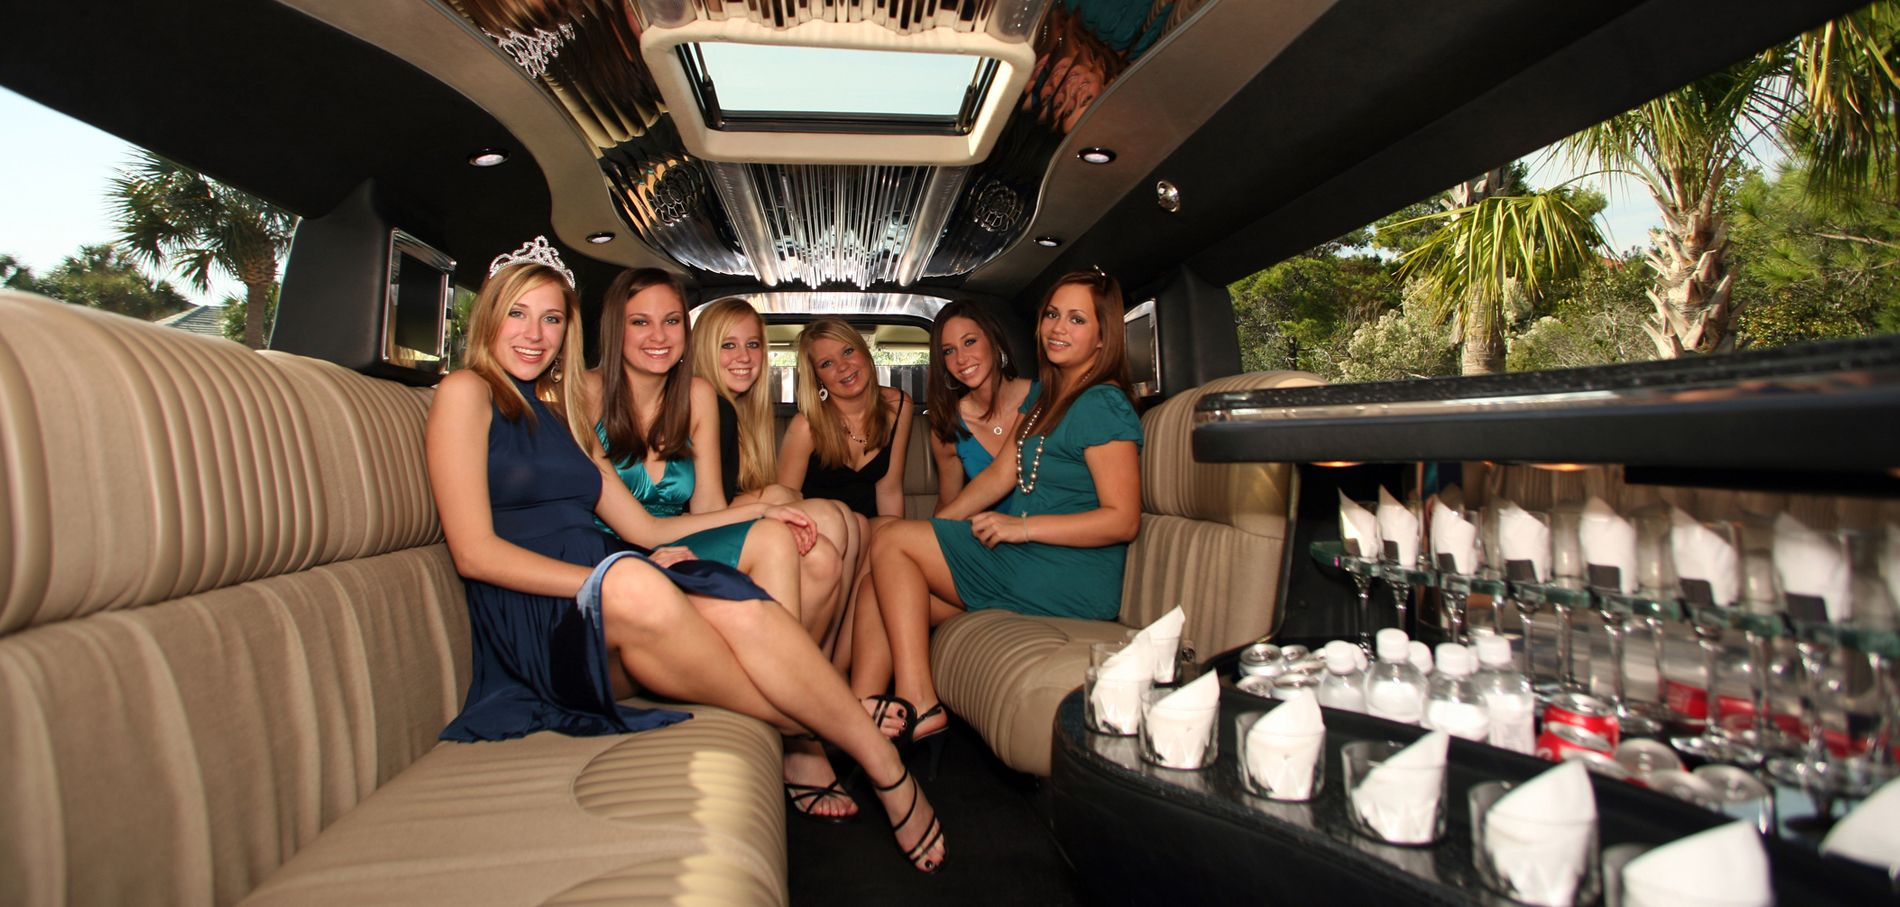 girls-luxurious-limo